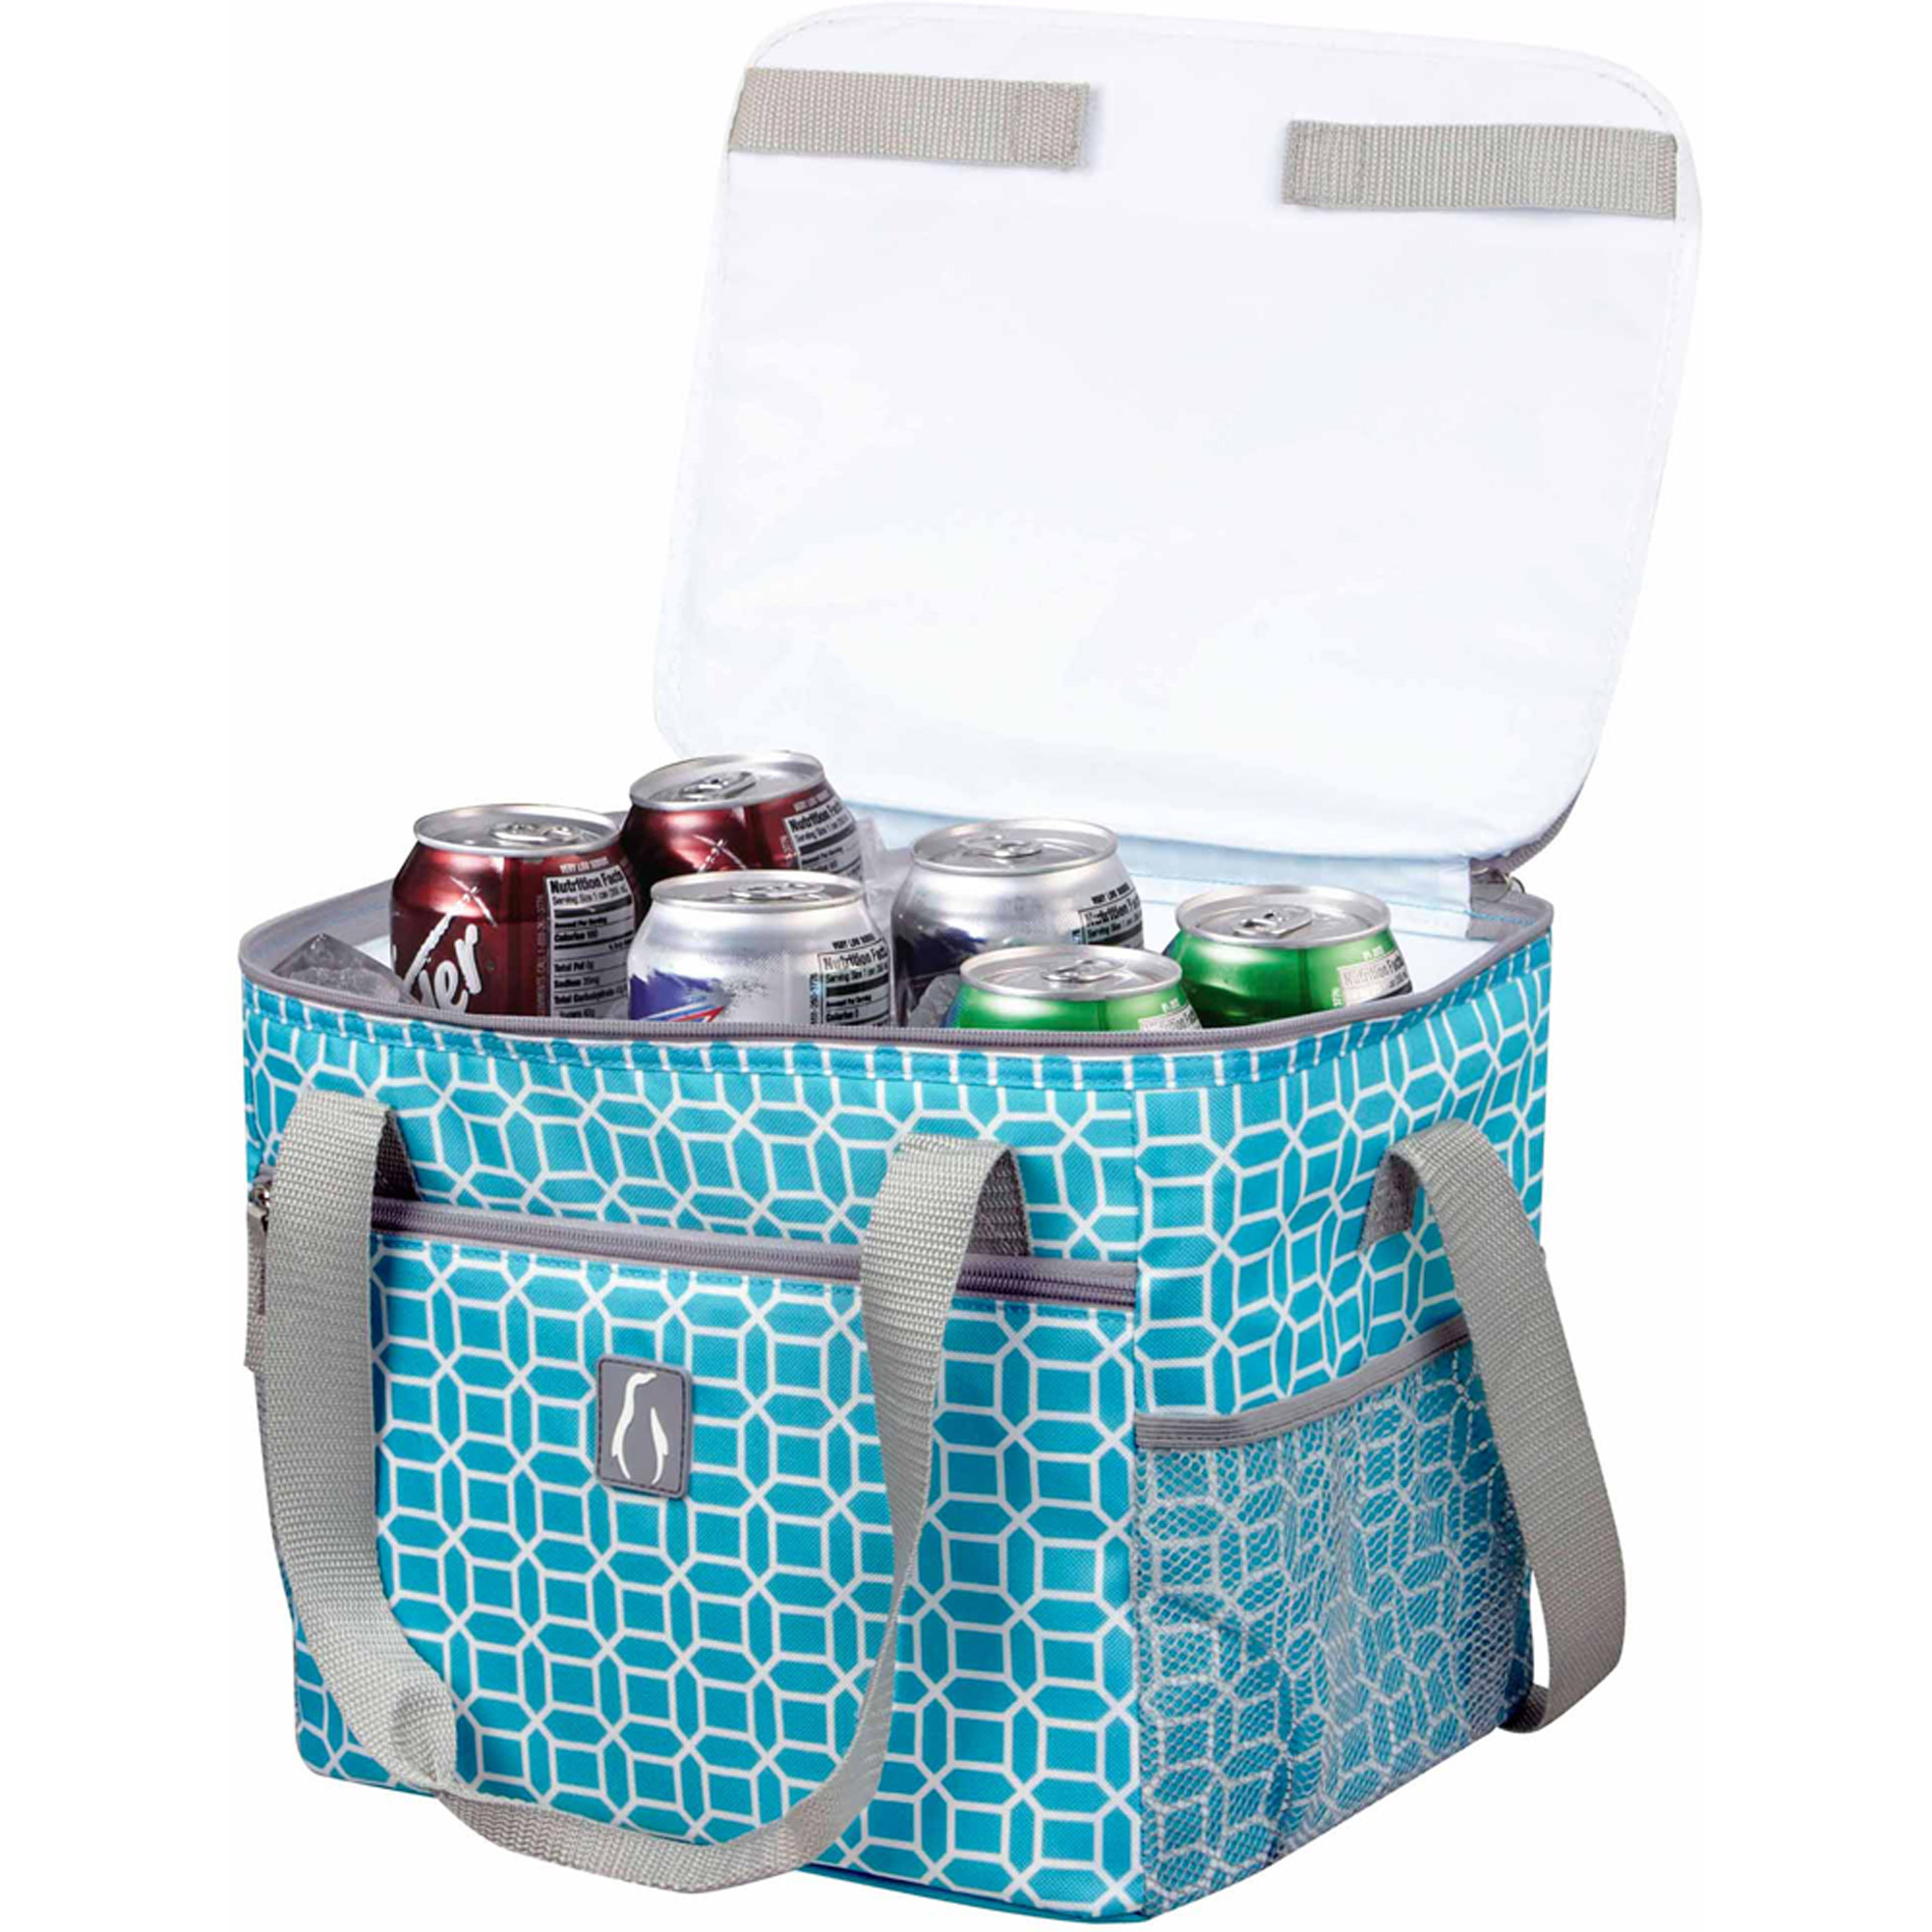 Collapsible Cooler - Walmart.com